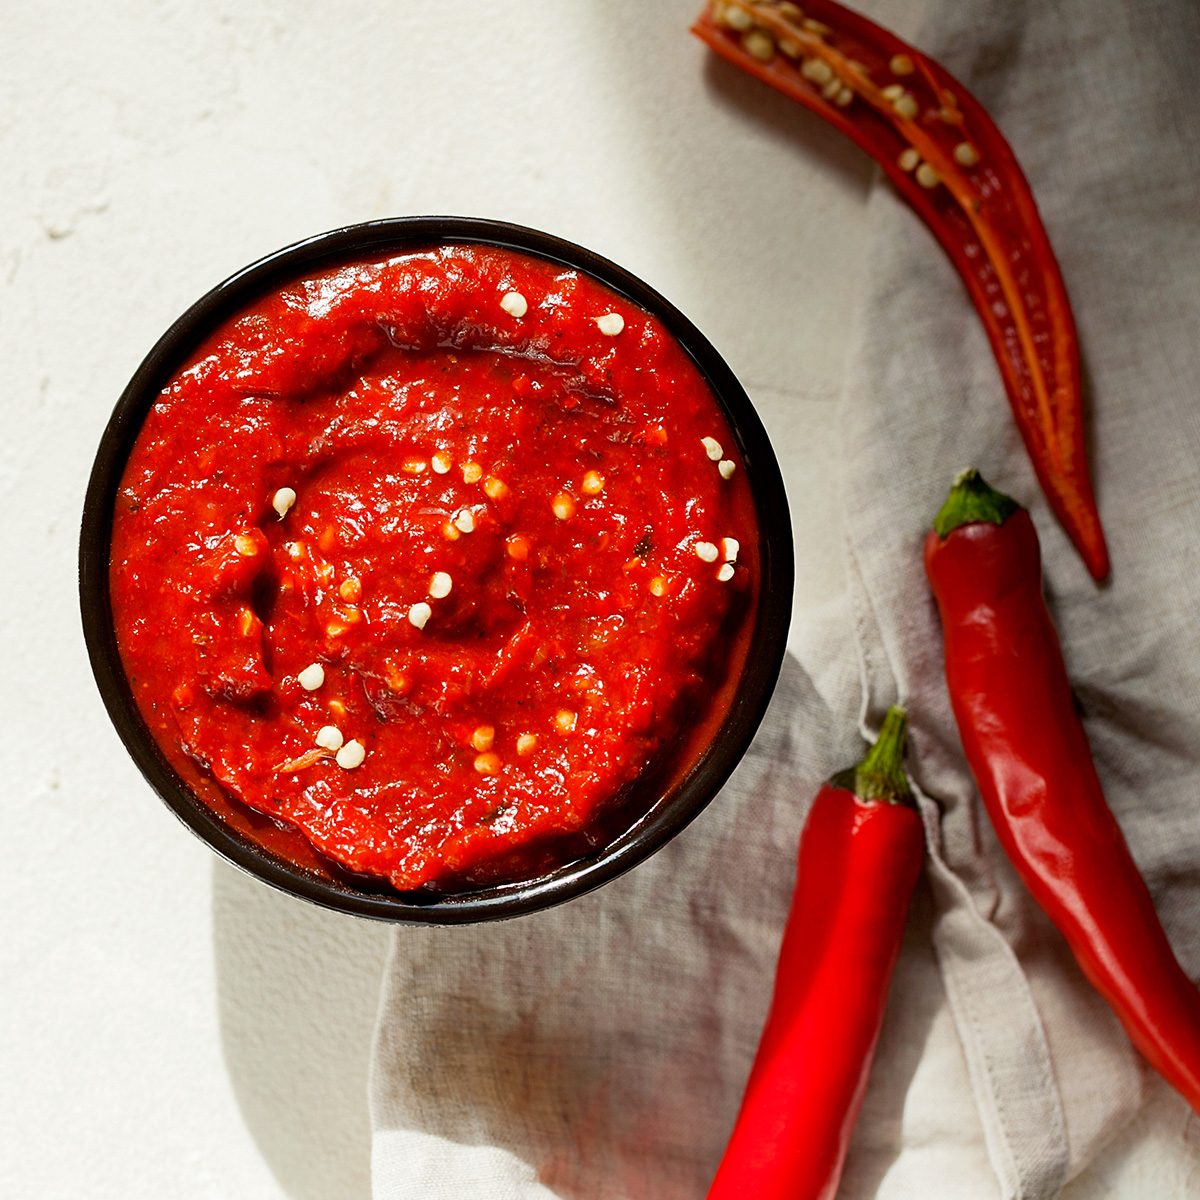 Traditional homemade rose harissa-hot chili pepper sauce paste with garlic and olive oil in small bowl on white plaster background